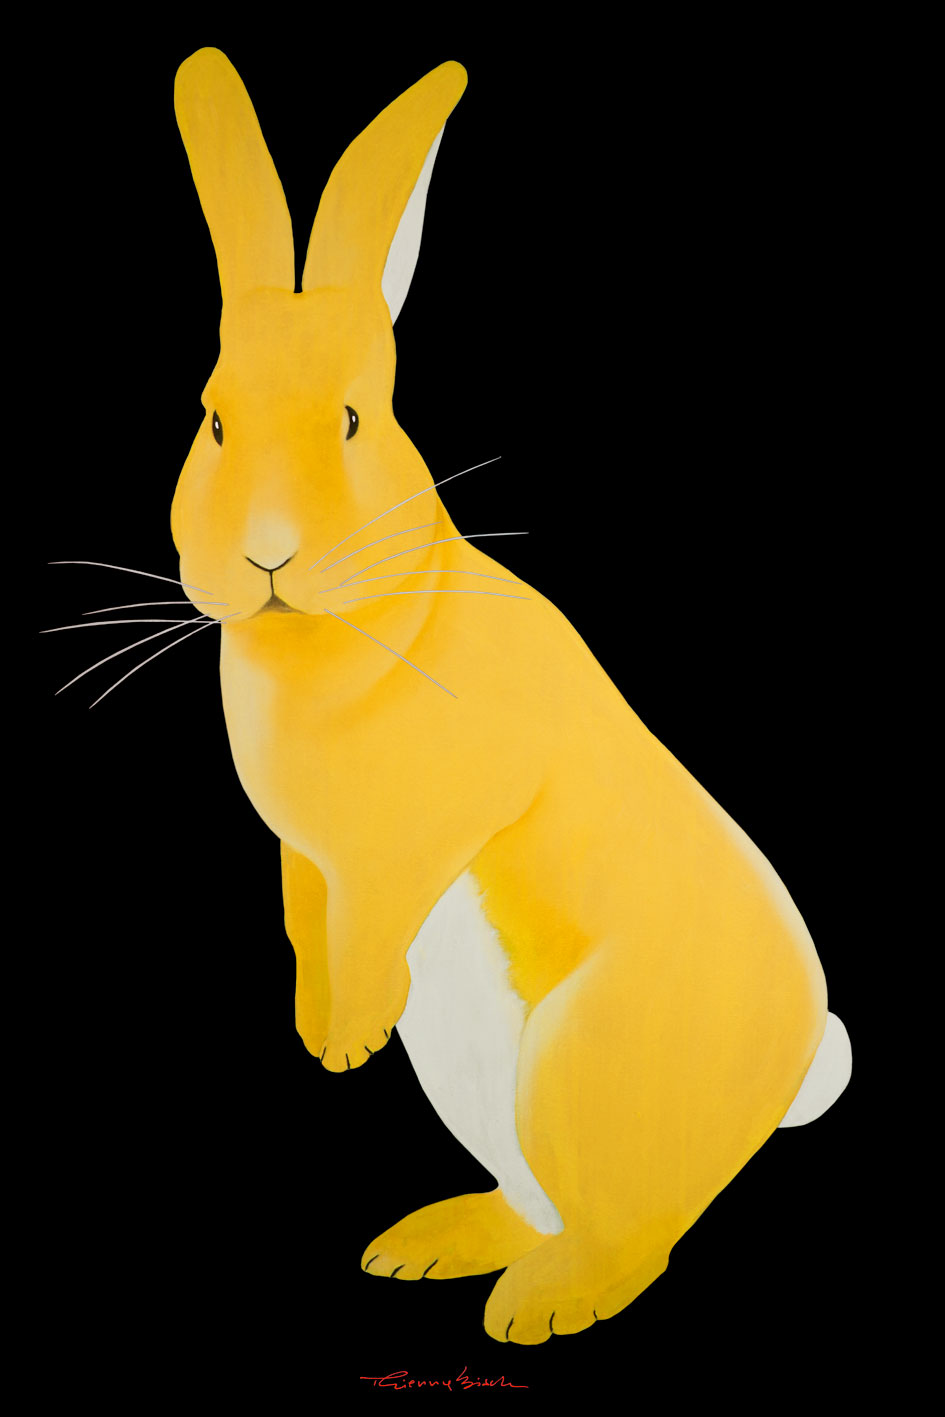 JOE RABBIT YELLOW RABBIT-FUNNY-RABBIT Animal painting by Thierry Bisch pets wildlife artist painter canvas art decoration